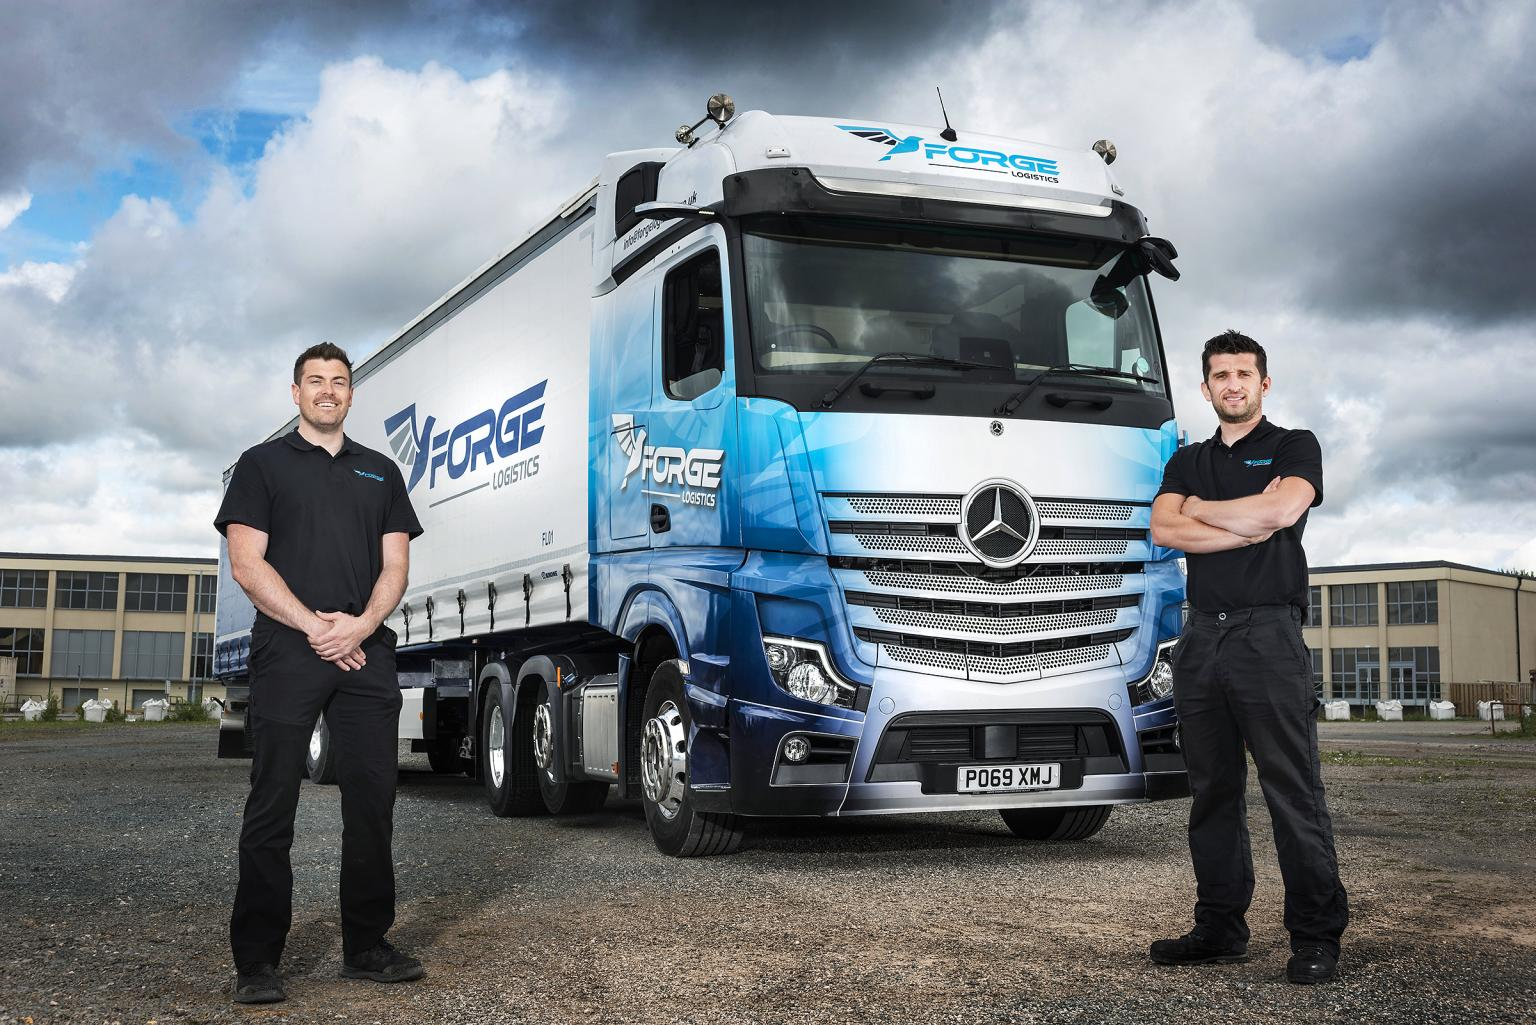 Hotfoot Forge ahead with new client win in Preston